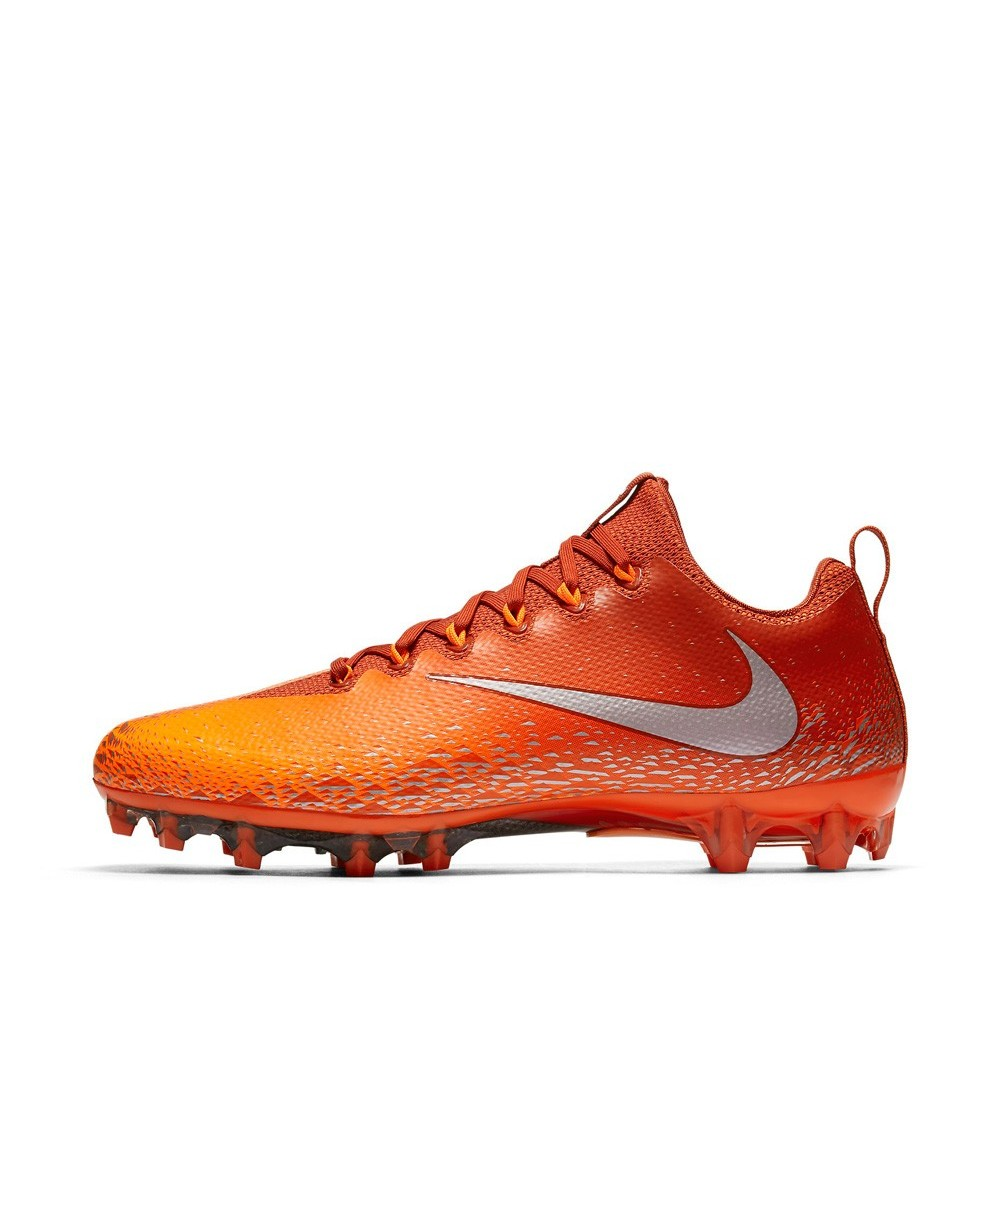 39fca5ddda9e Nike Men's Vapor Untouchable Pro American Football Cleats Orange